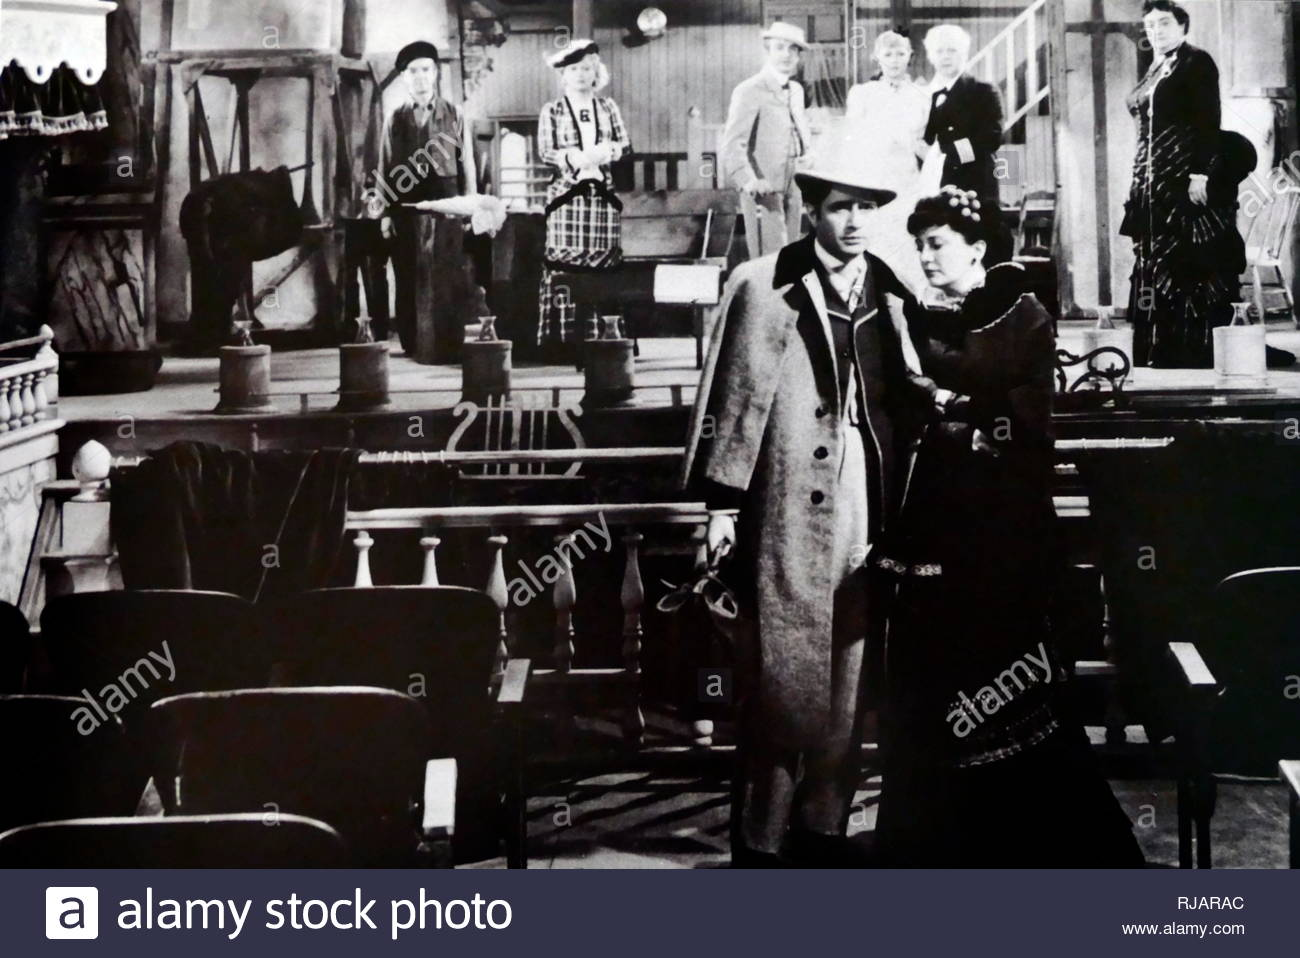 Show Boat is a 1936 romantic musical film directed by James Whale, based on the musical of the same name by Jerome Kern and Oscar Hammerstein II, which in turn was adapted from the novel of the same name by Edna Ferber. - Stock Image